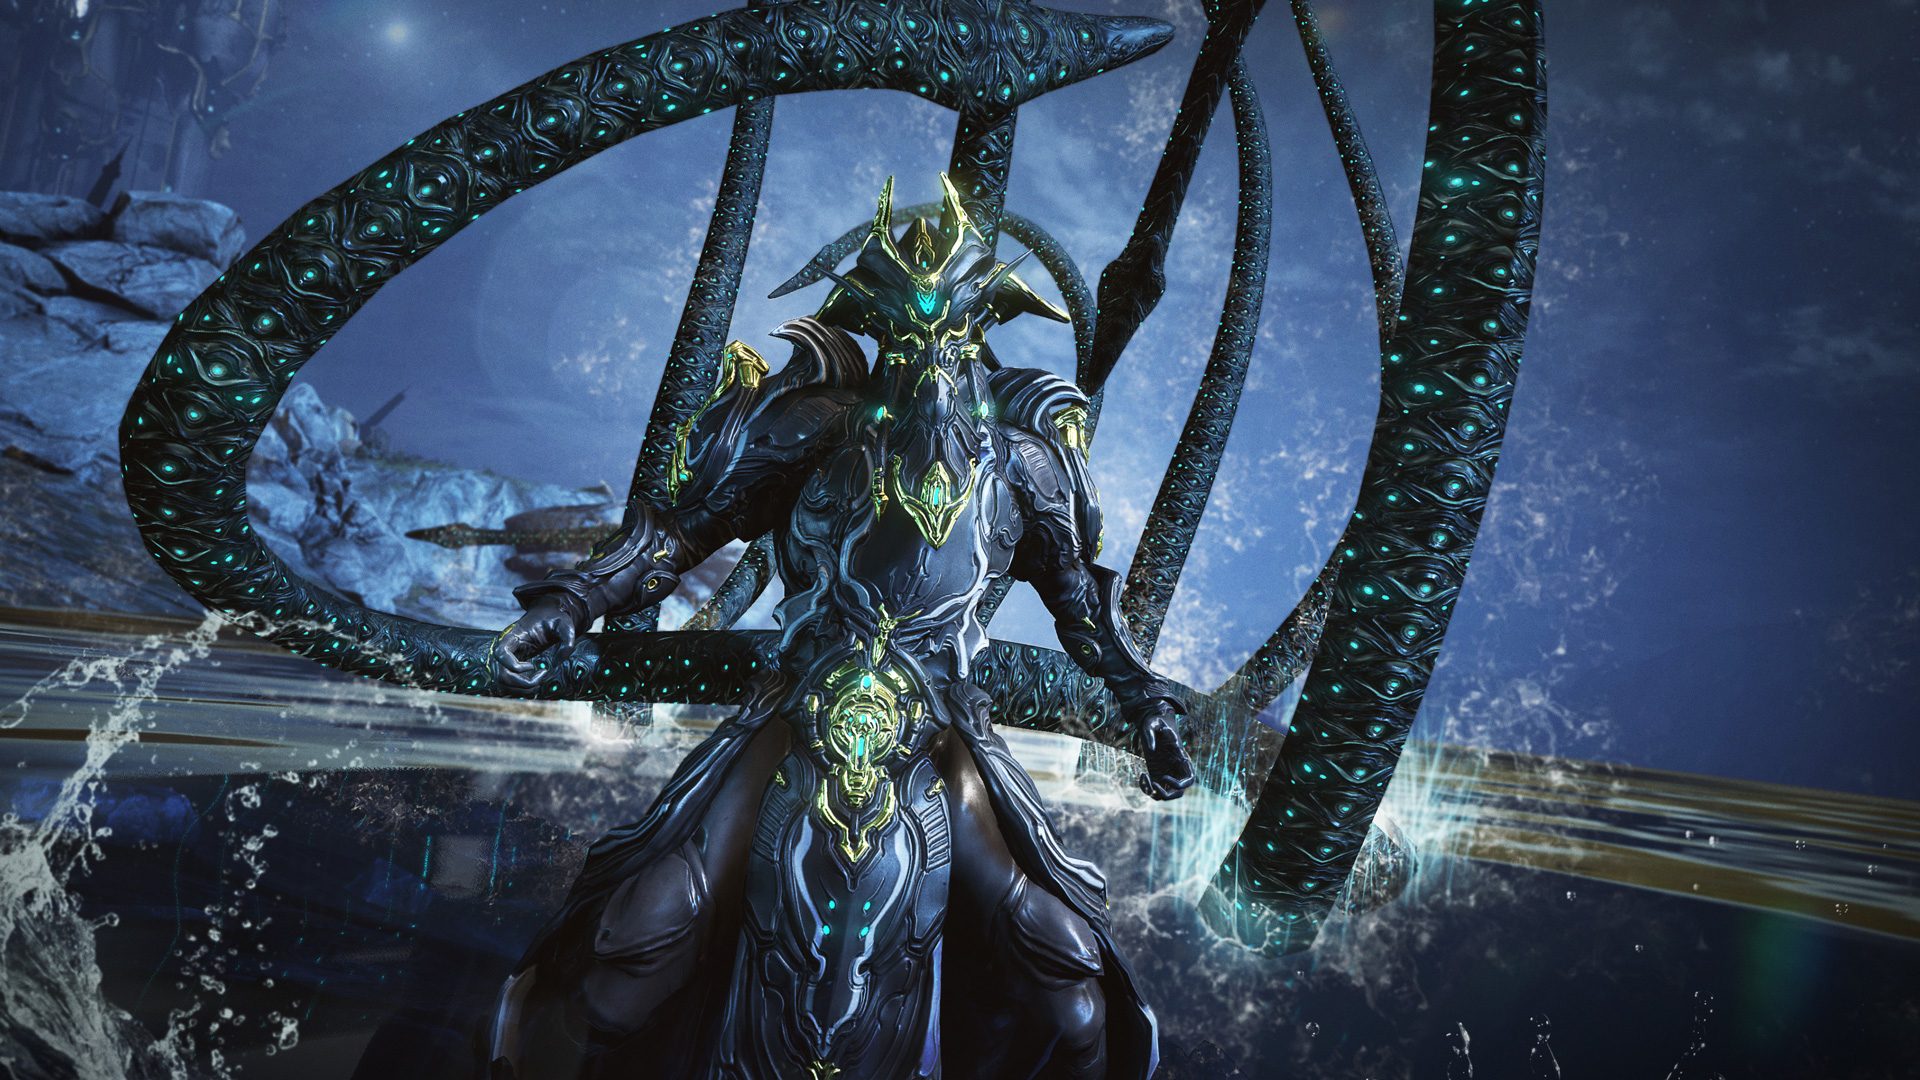 Warframe's Digital Extremes is teasing the Heart of Deimos and Hydroid Prime for TennoCon 2020 screenshot